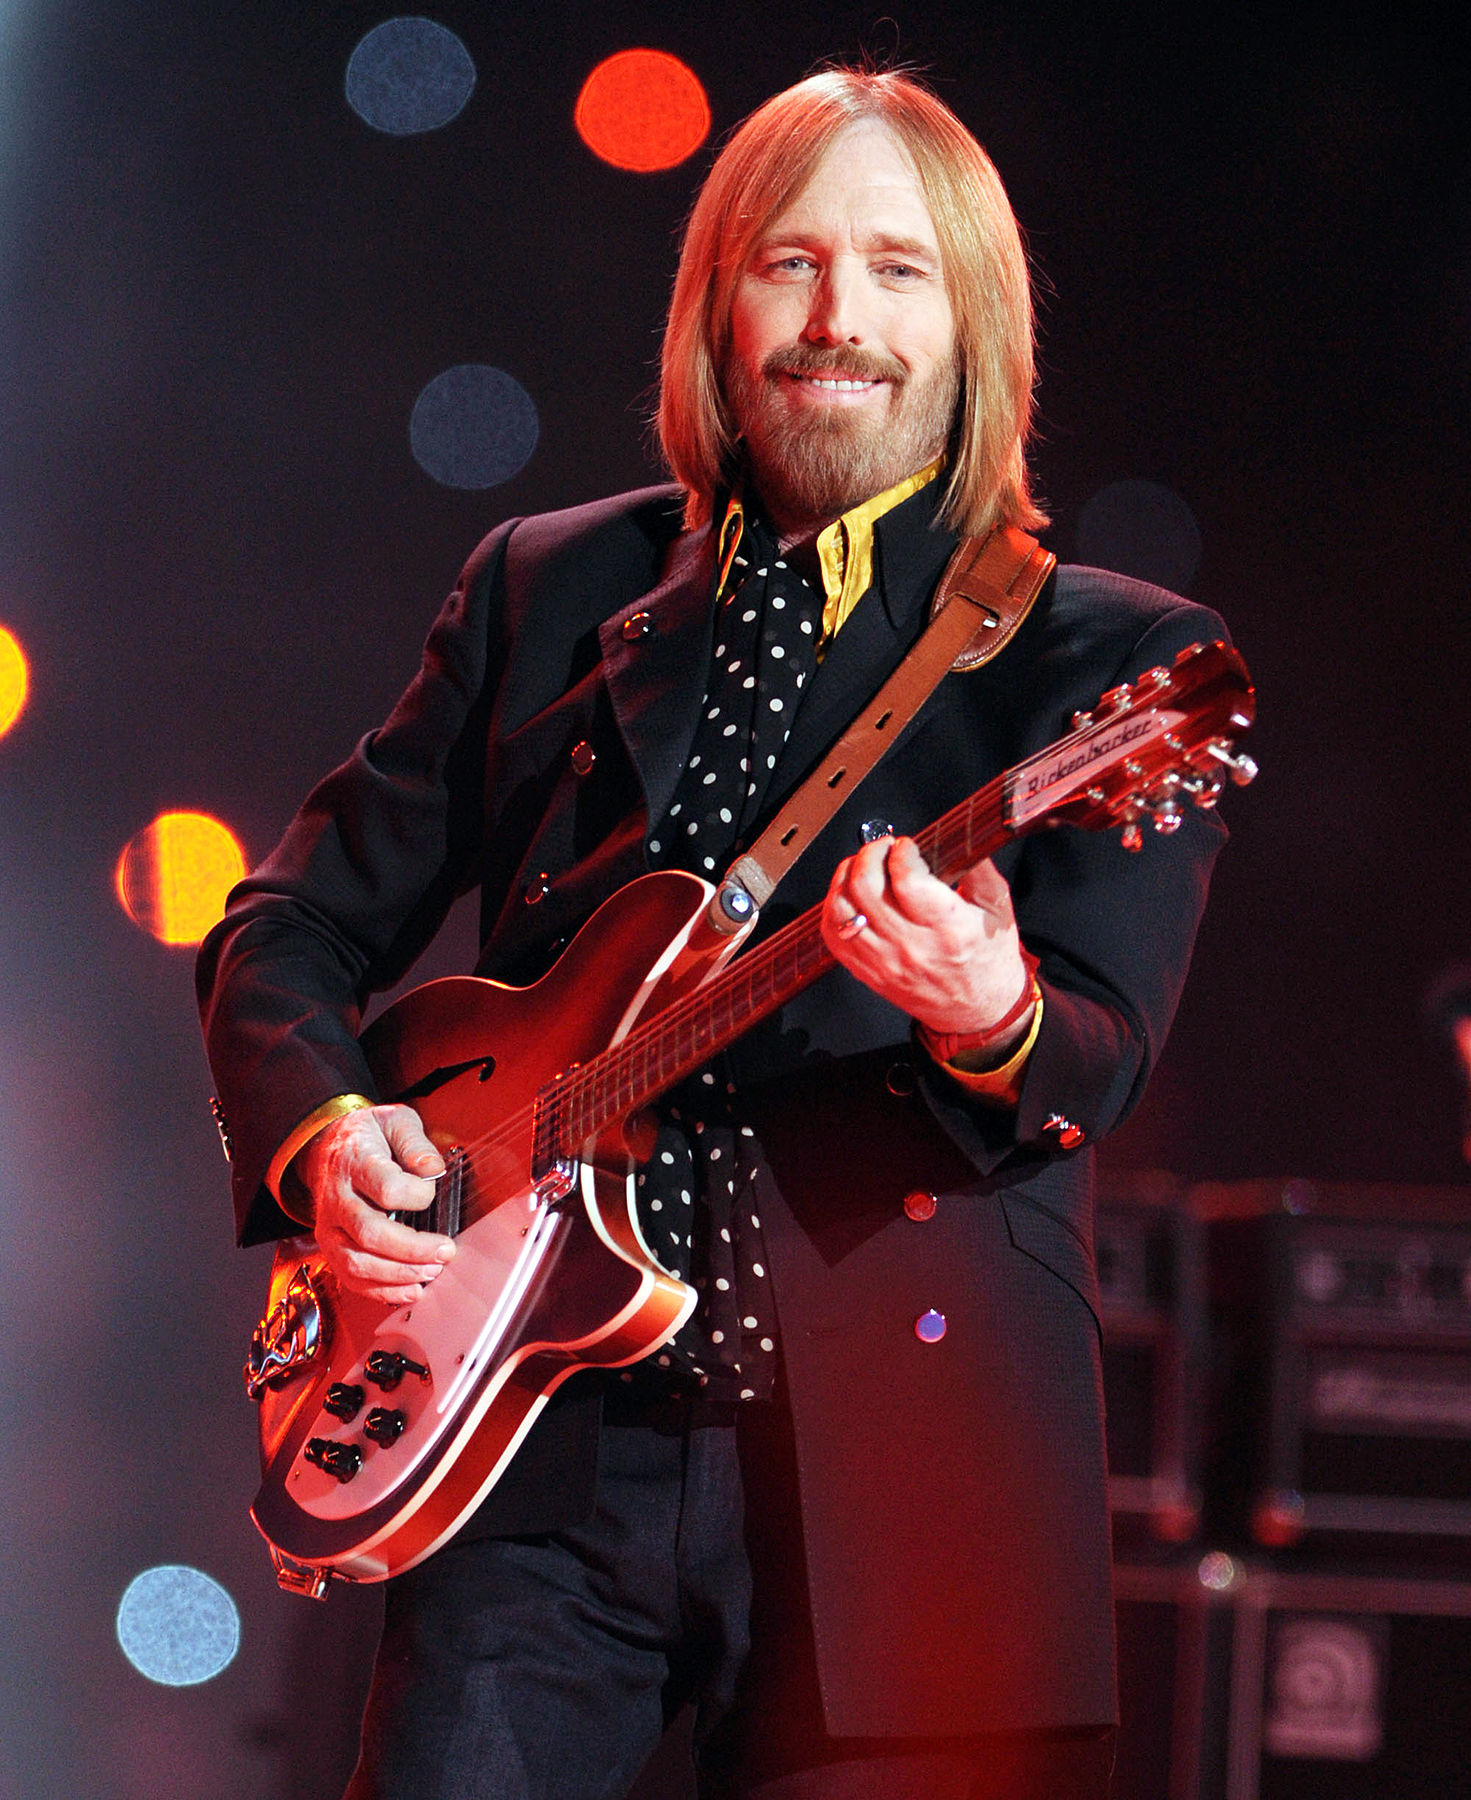 Demasiado viejo para el Rock'n'Roll? Tom-petty